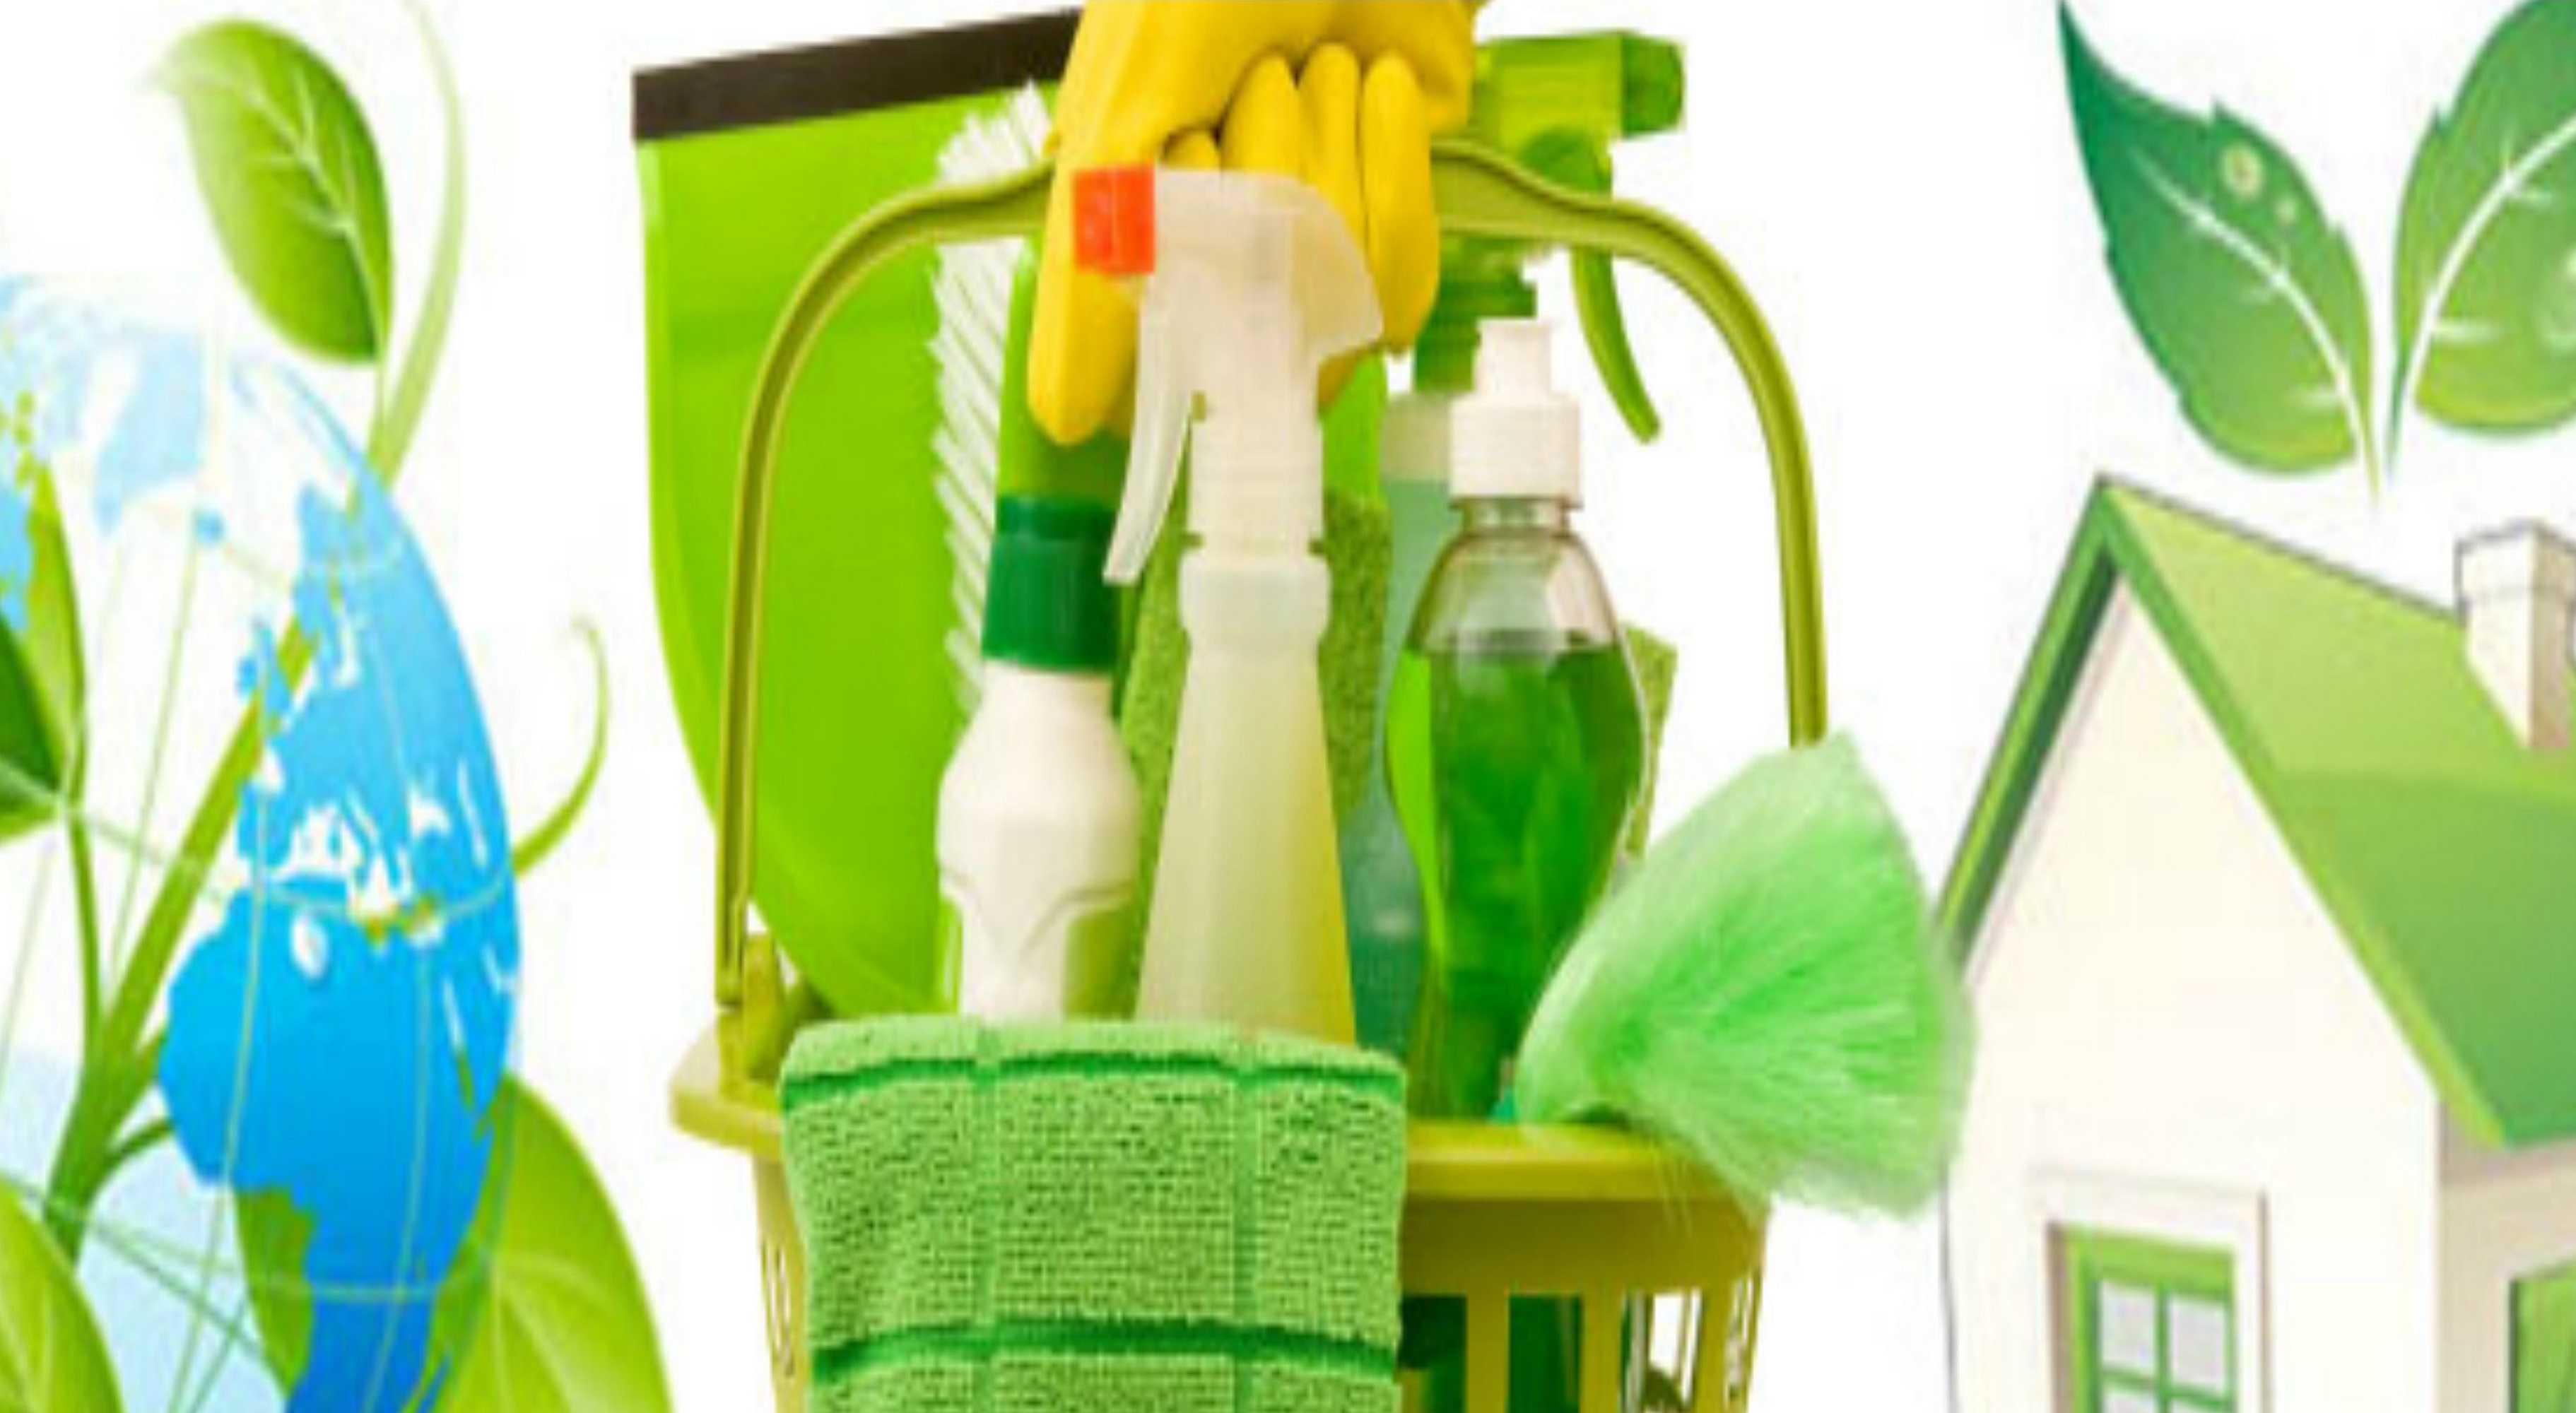 Reasons To Use Green Cleaning Products